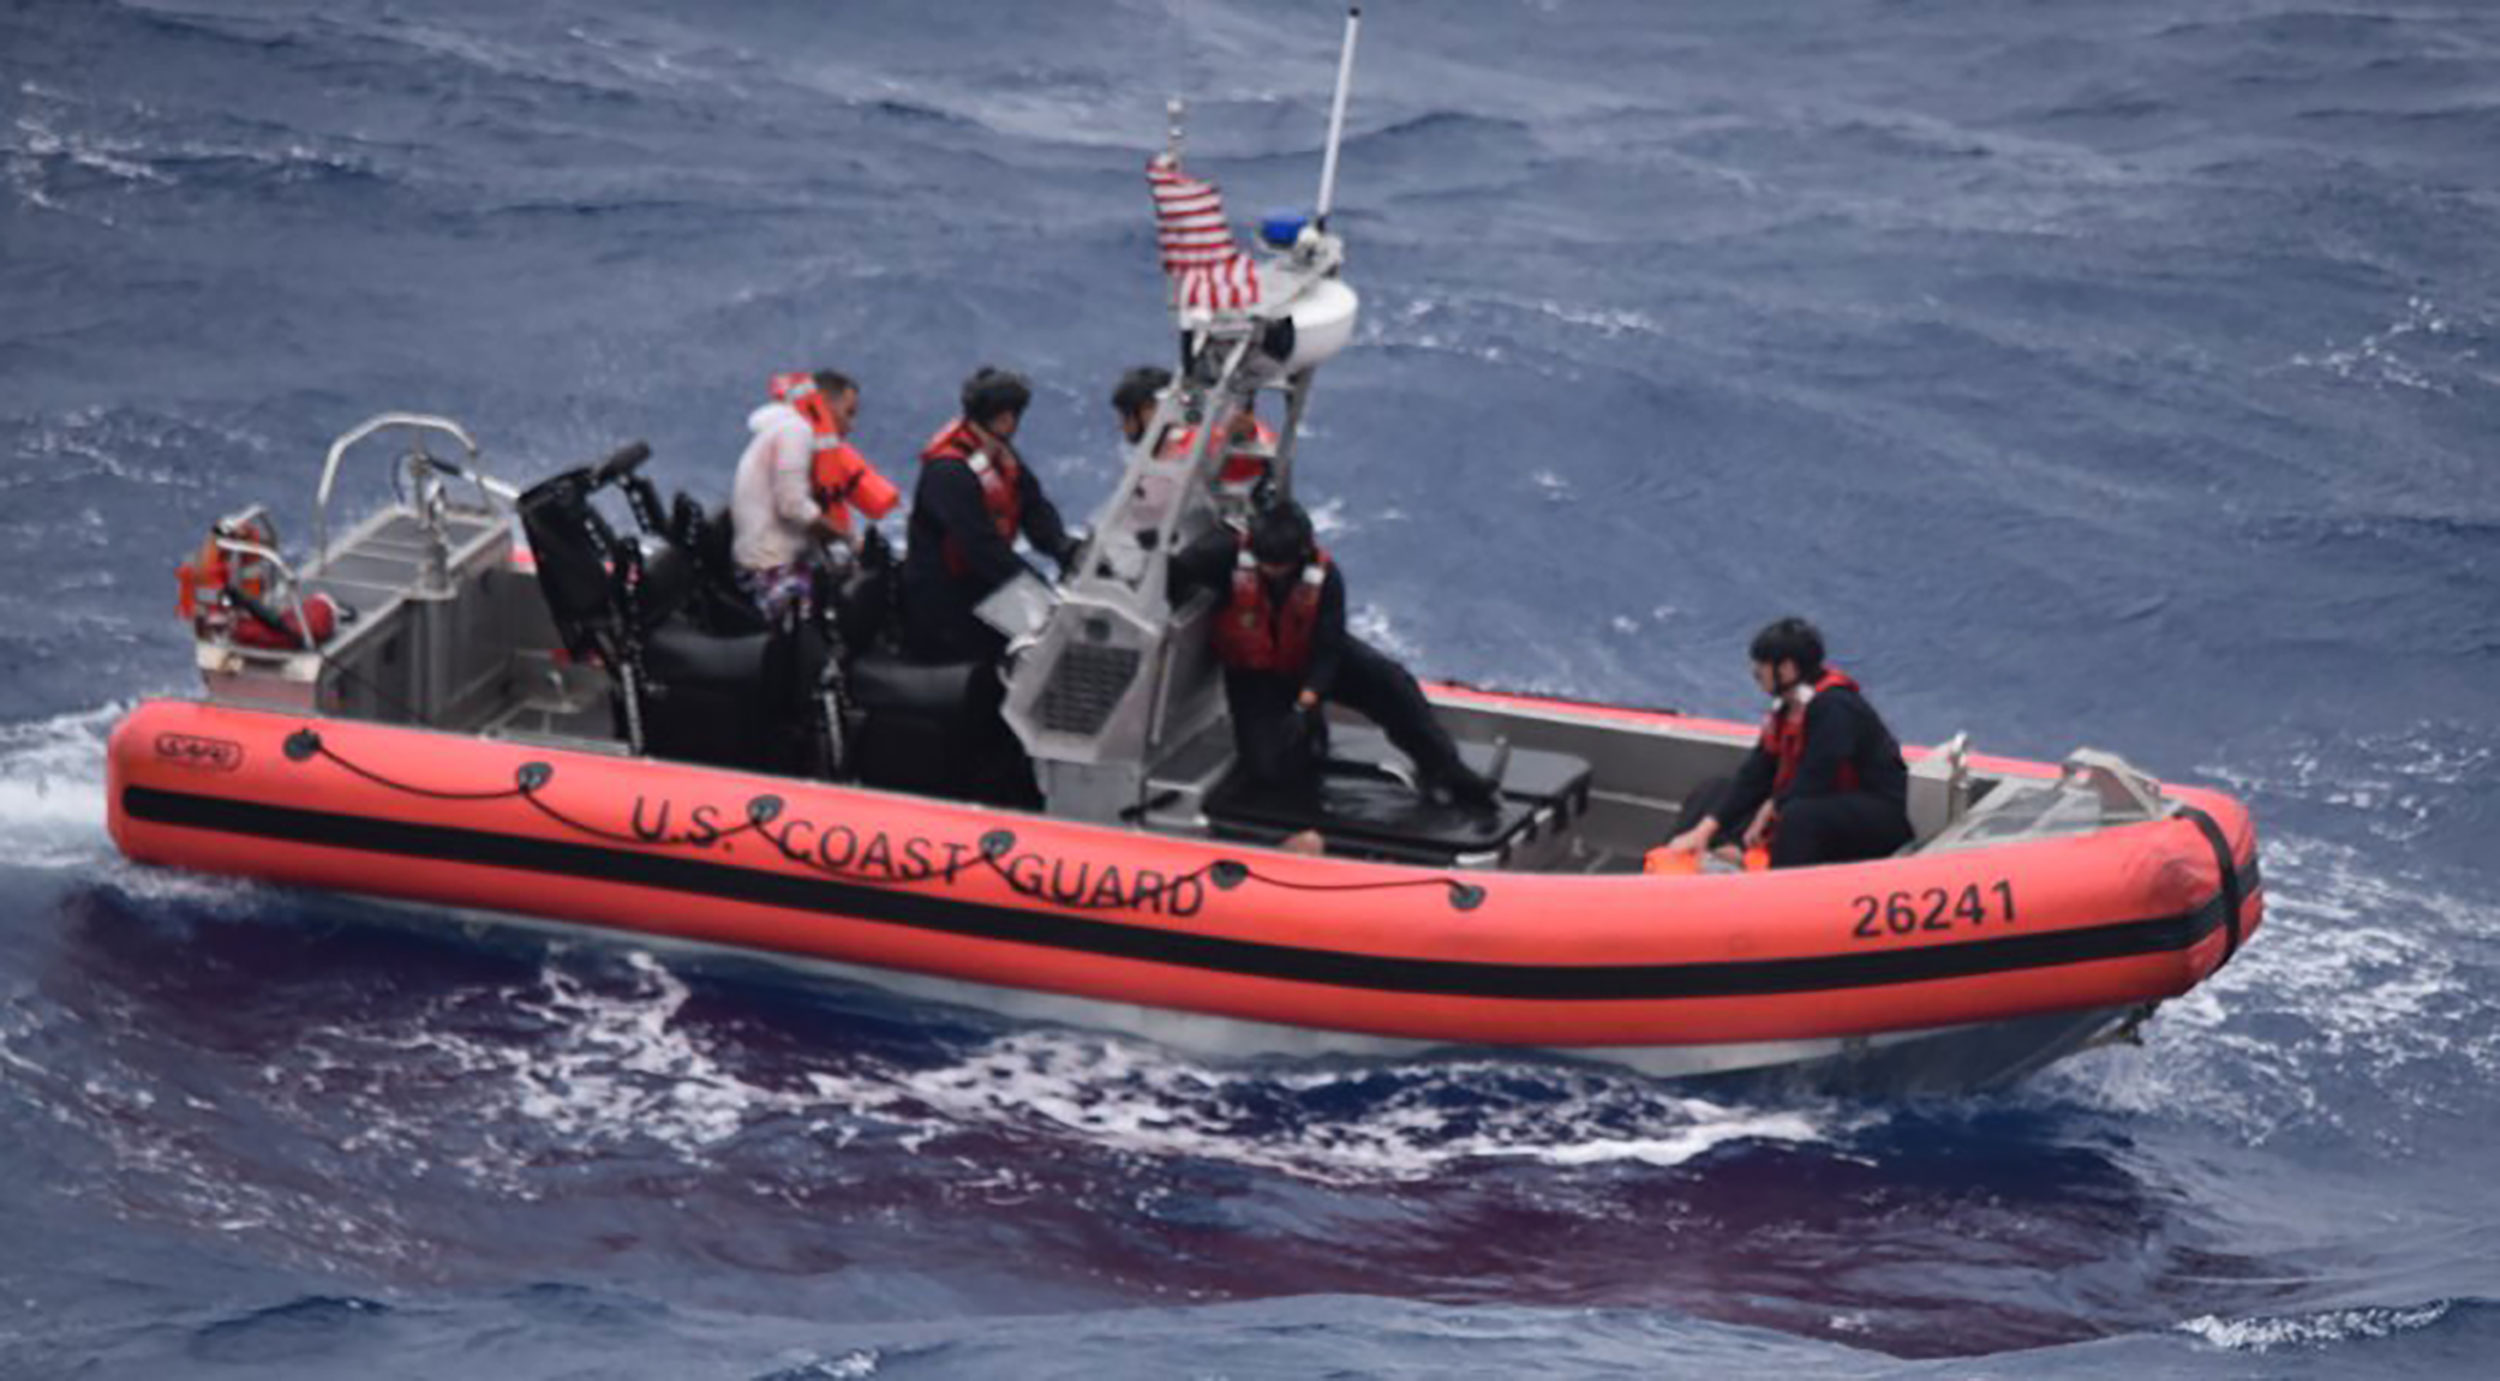 The Coast Guard published this picture of Tuesday's rescue efforts in waters miles off Key West.